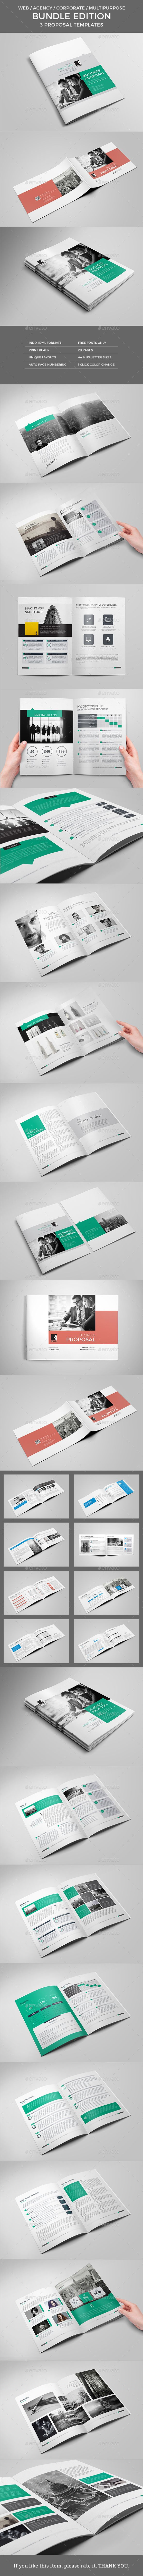 In Proposal Bundle  Proposal Templates Proposals And Project